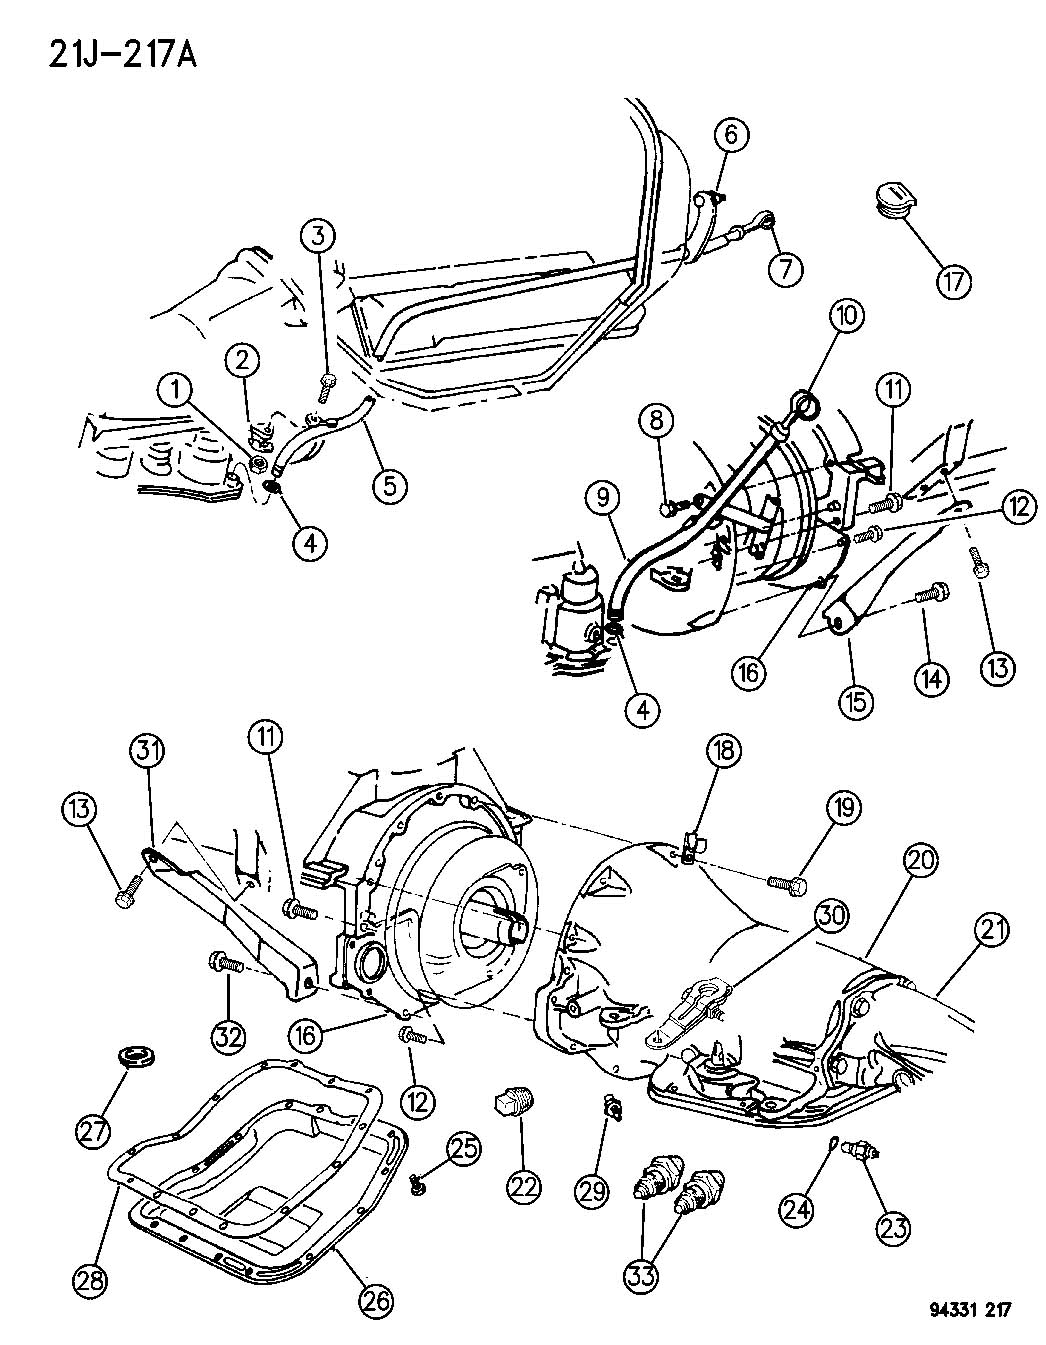 By 3310 Dodge 47re Transmission Wiring Diagram Free Diagram